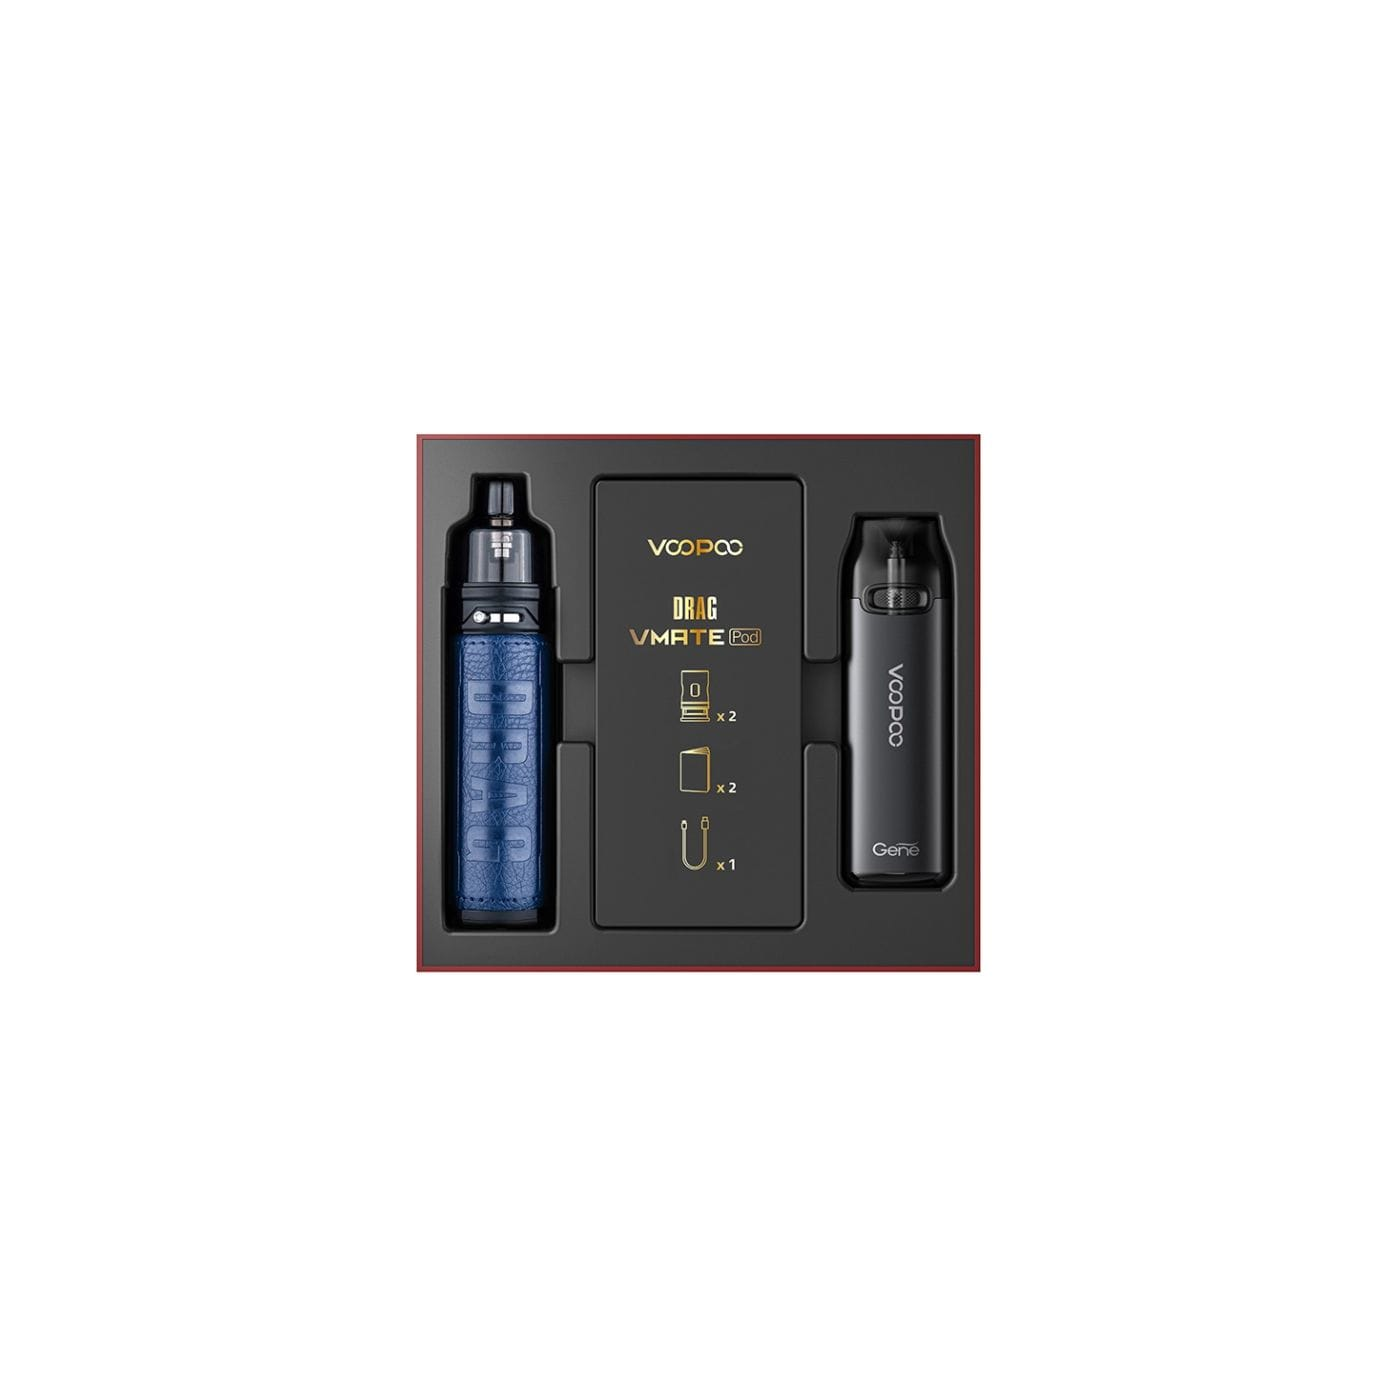 VooPoo Drag S and VMATE Pod Limited Edition Set